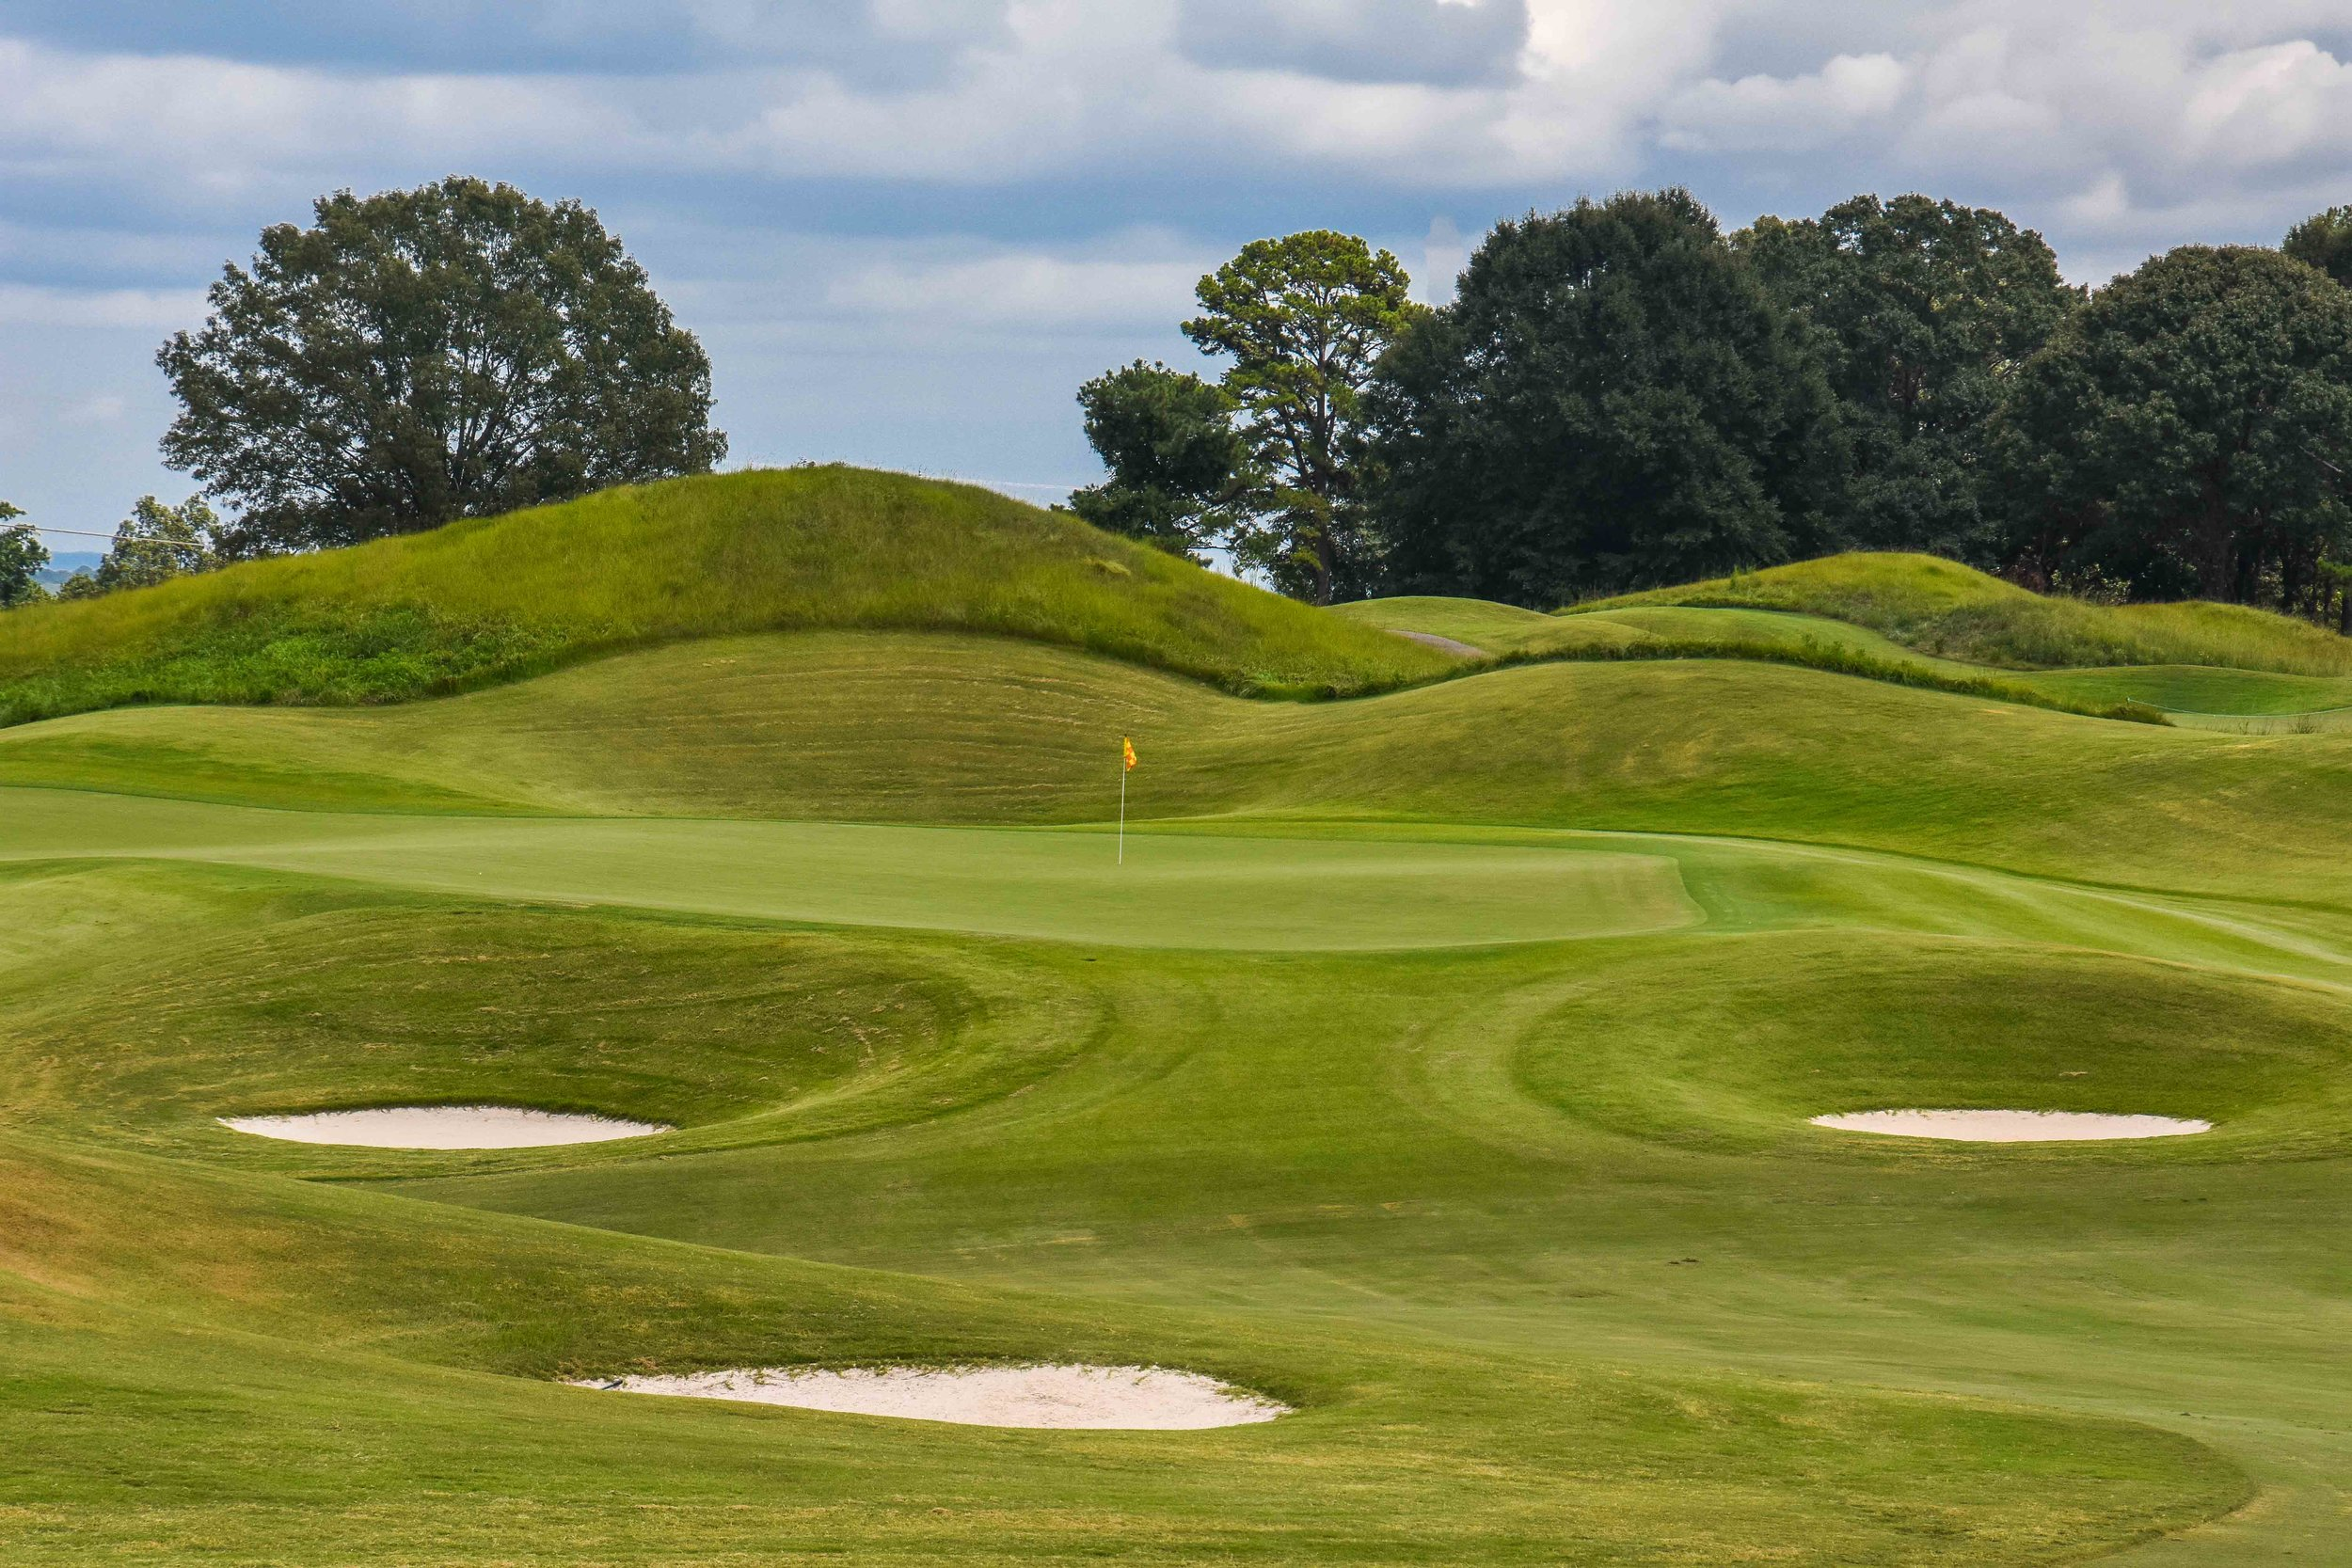 Capitol Hill's  Senator Course  plays host to the Yokohama Tire LPGA Classic.